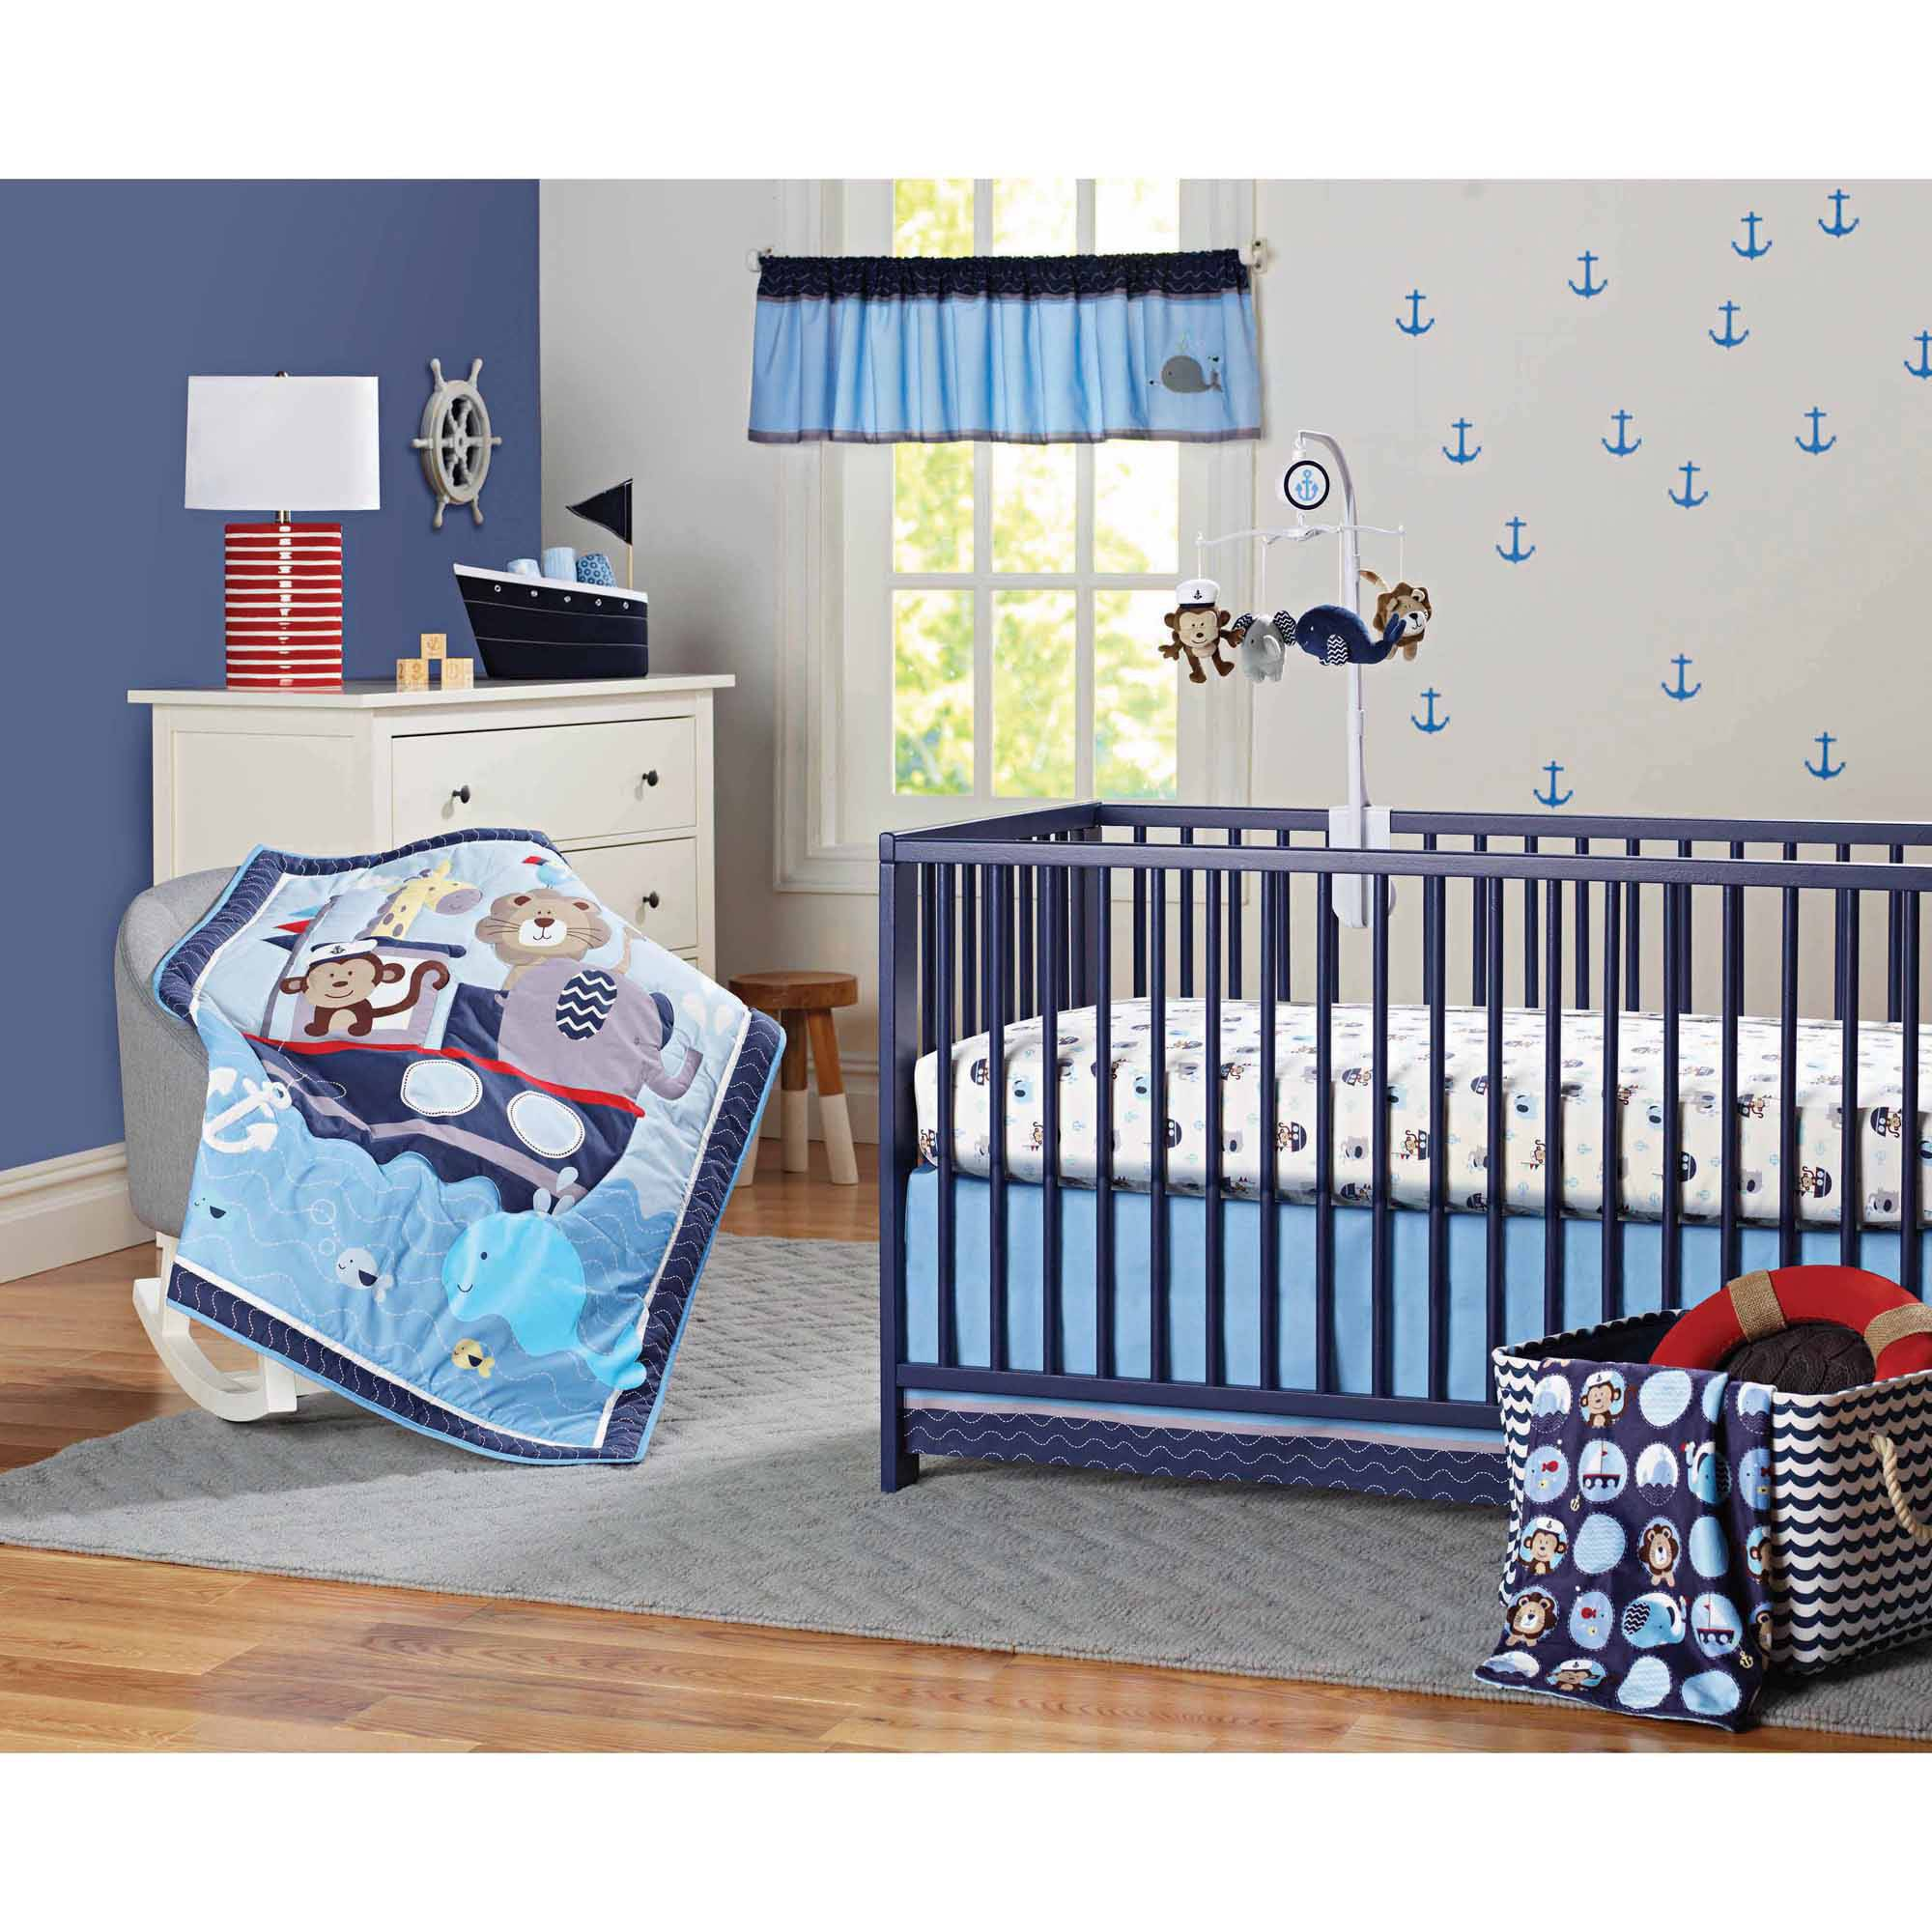 Garanimals Boating Buddies 3-Piece Crib Bedding Set